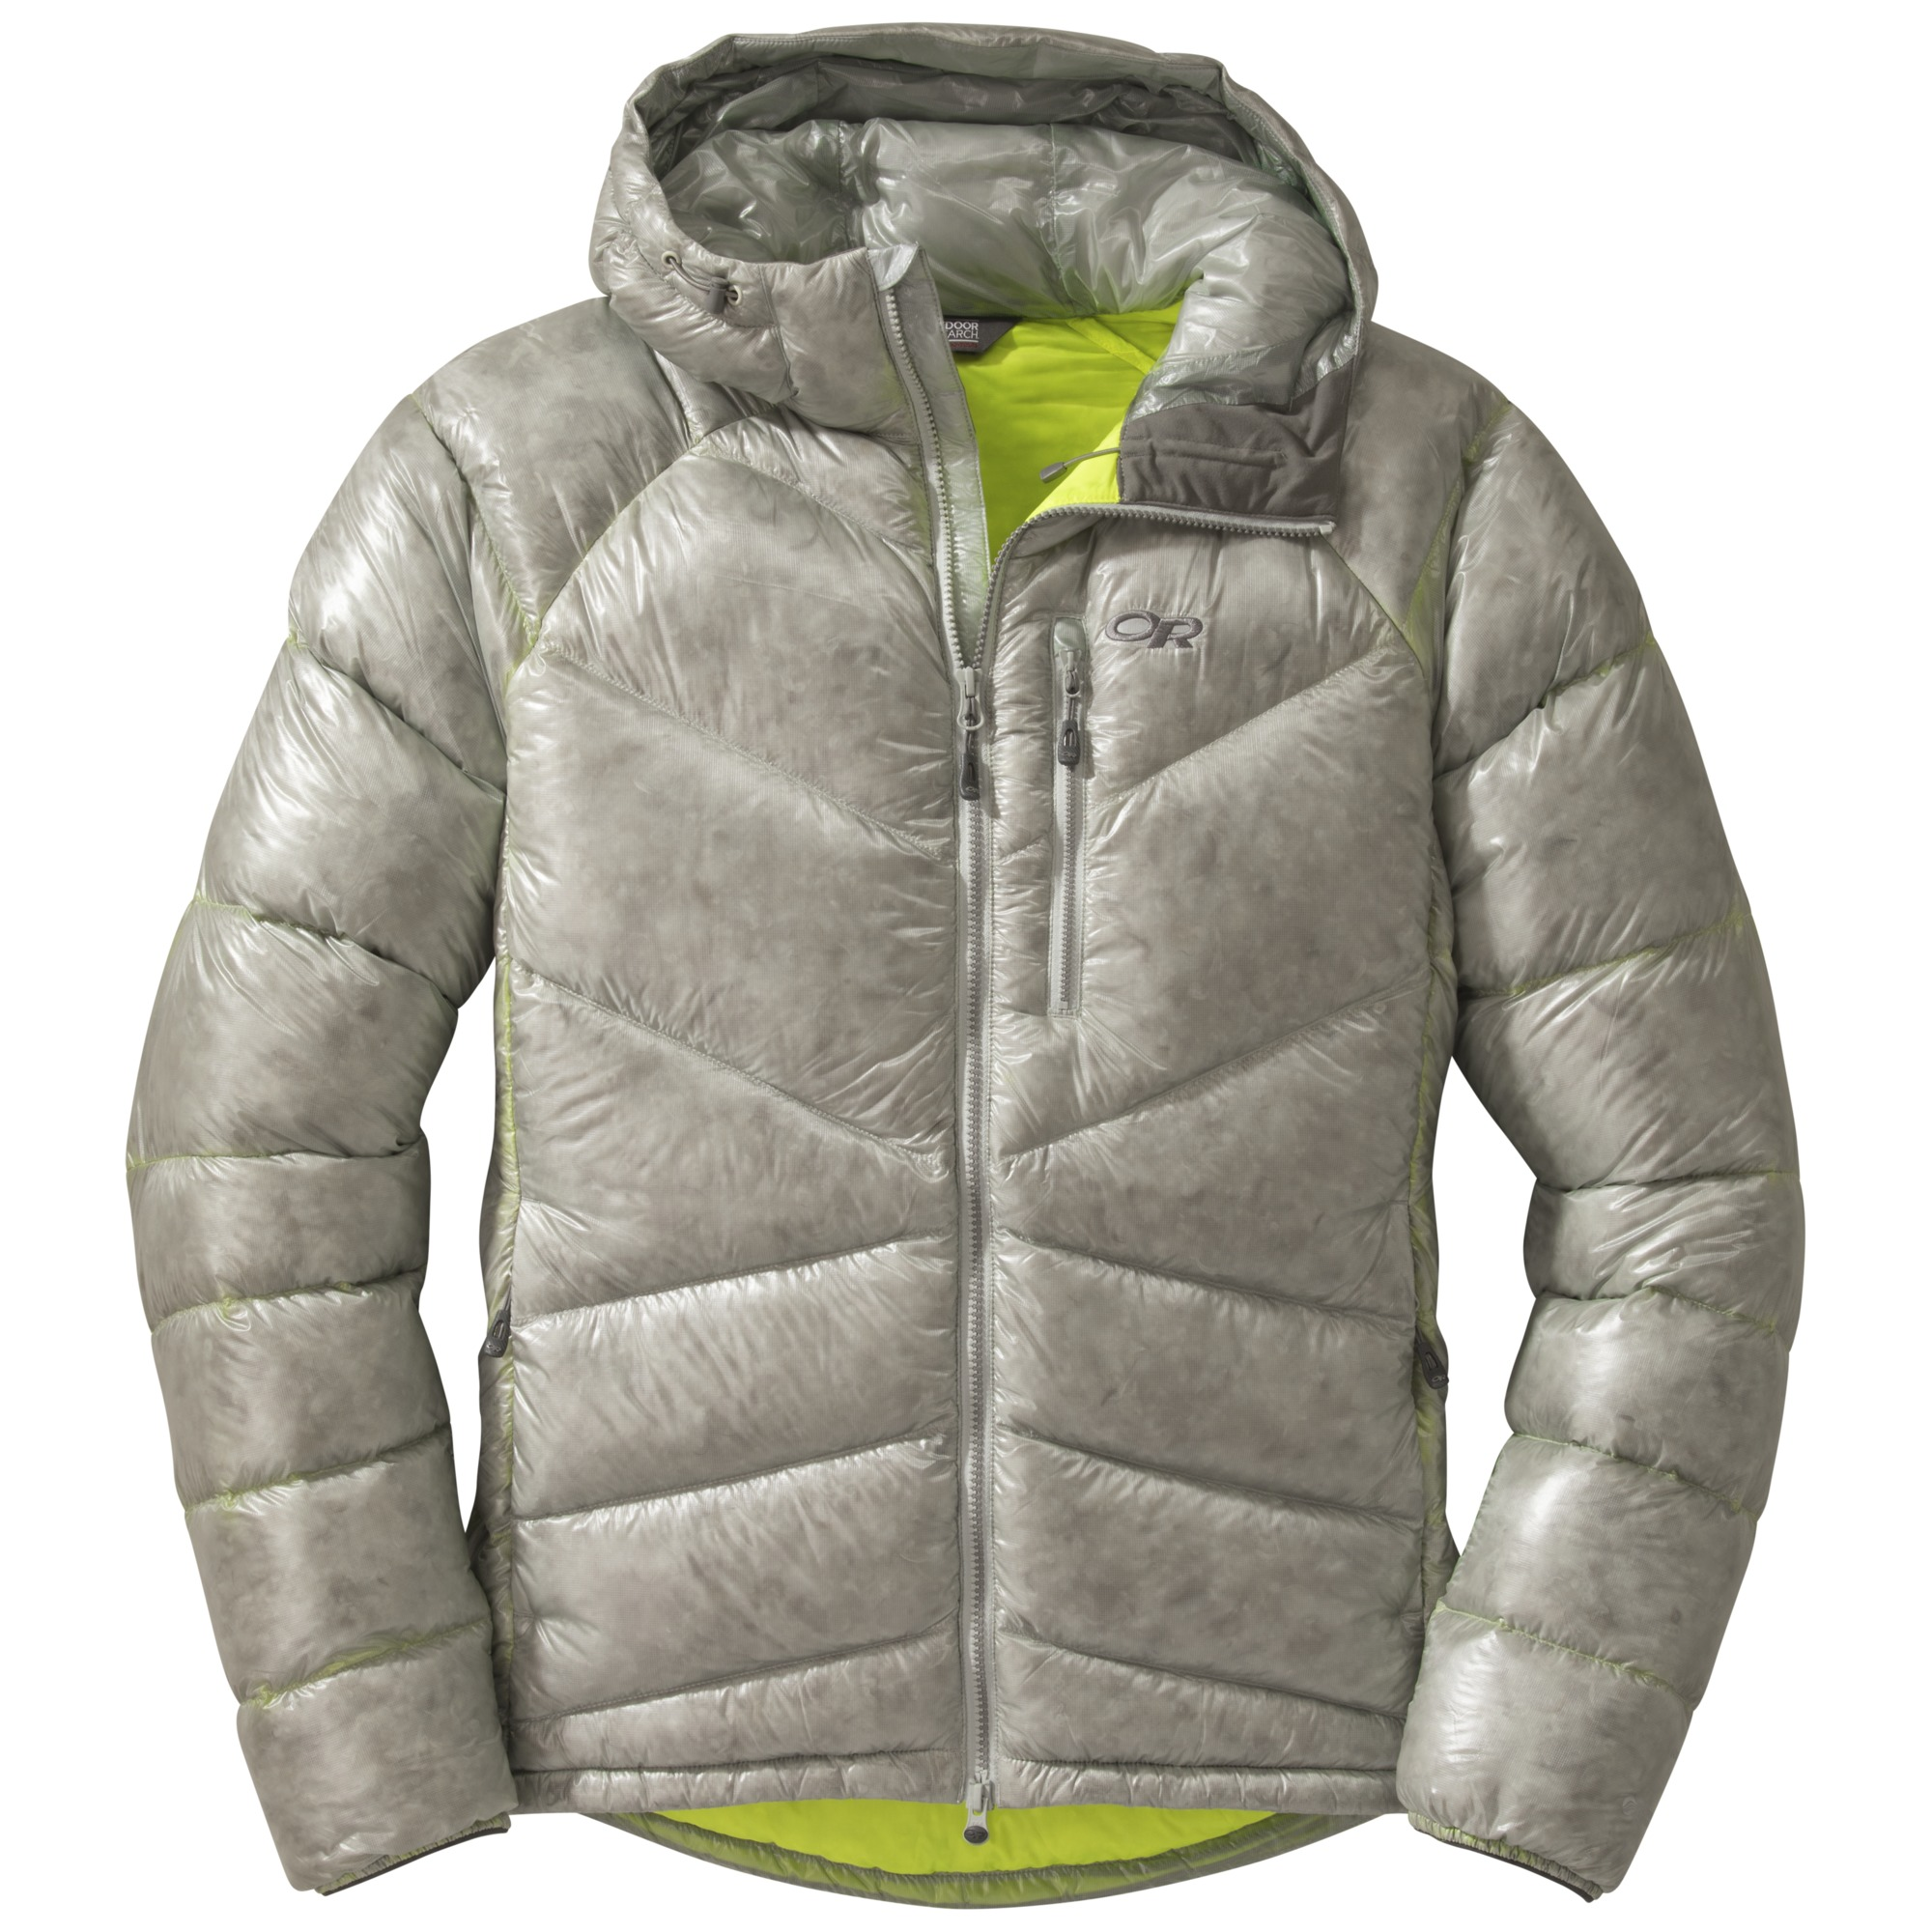 Mens Incandescent Hooded Down Jacket Alloy Jolt Outdoor Research Jaket Hoodie Jumper Abslt Or